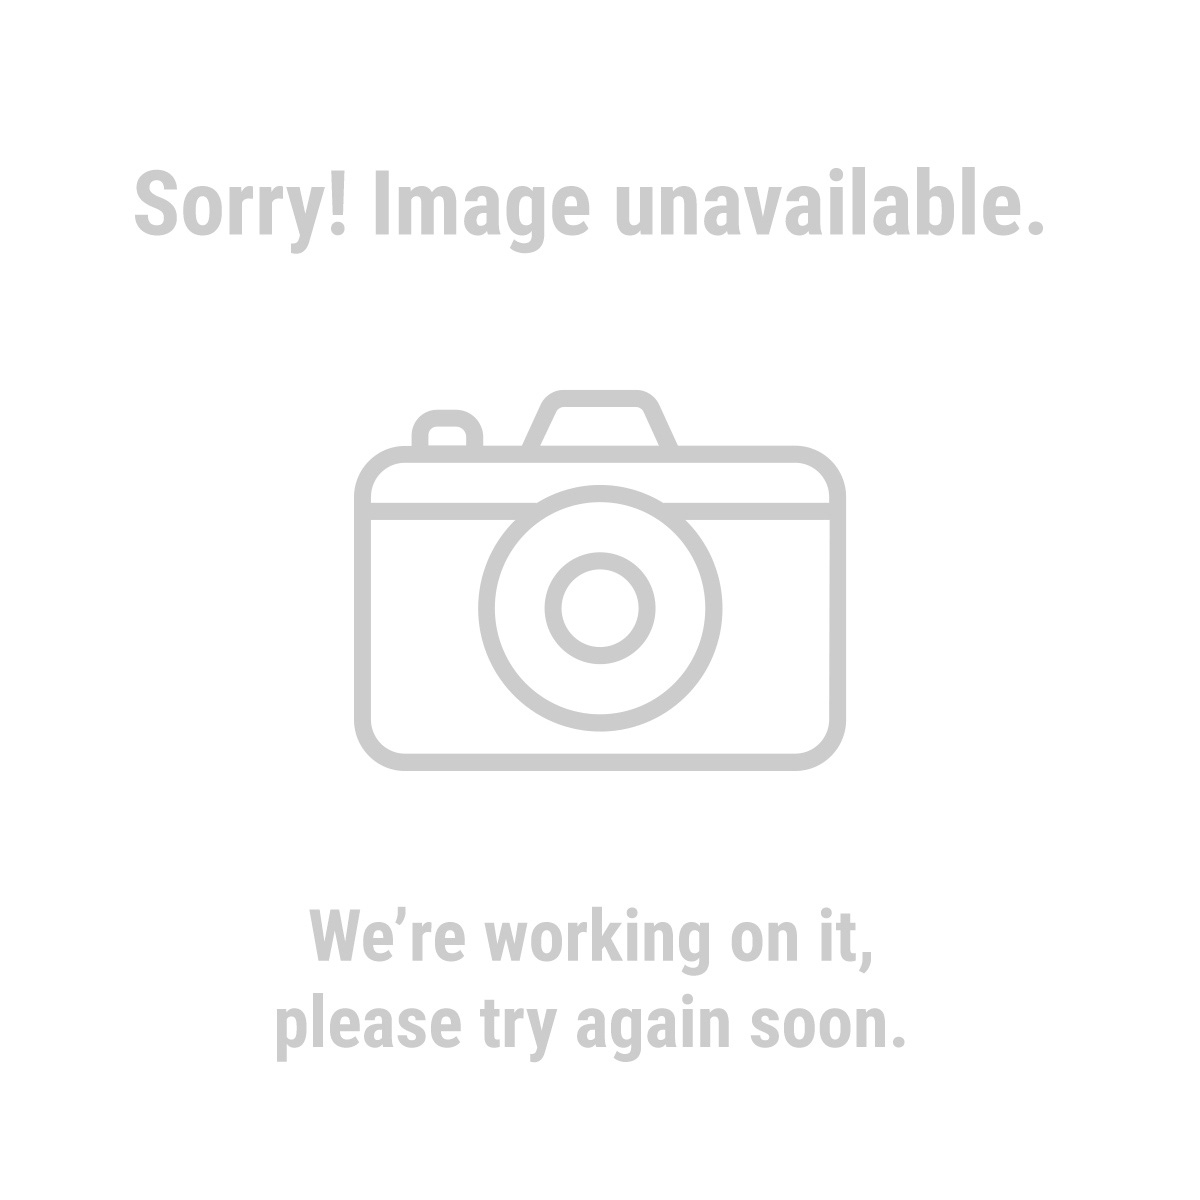 Smith + Jones 68302 3 Horsepower Compressor Duty Motor